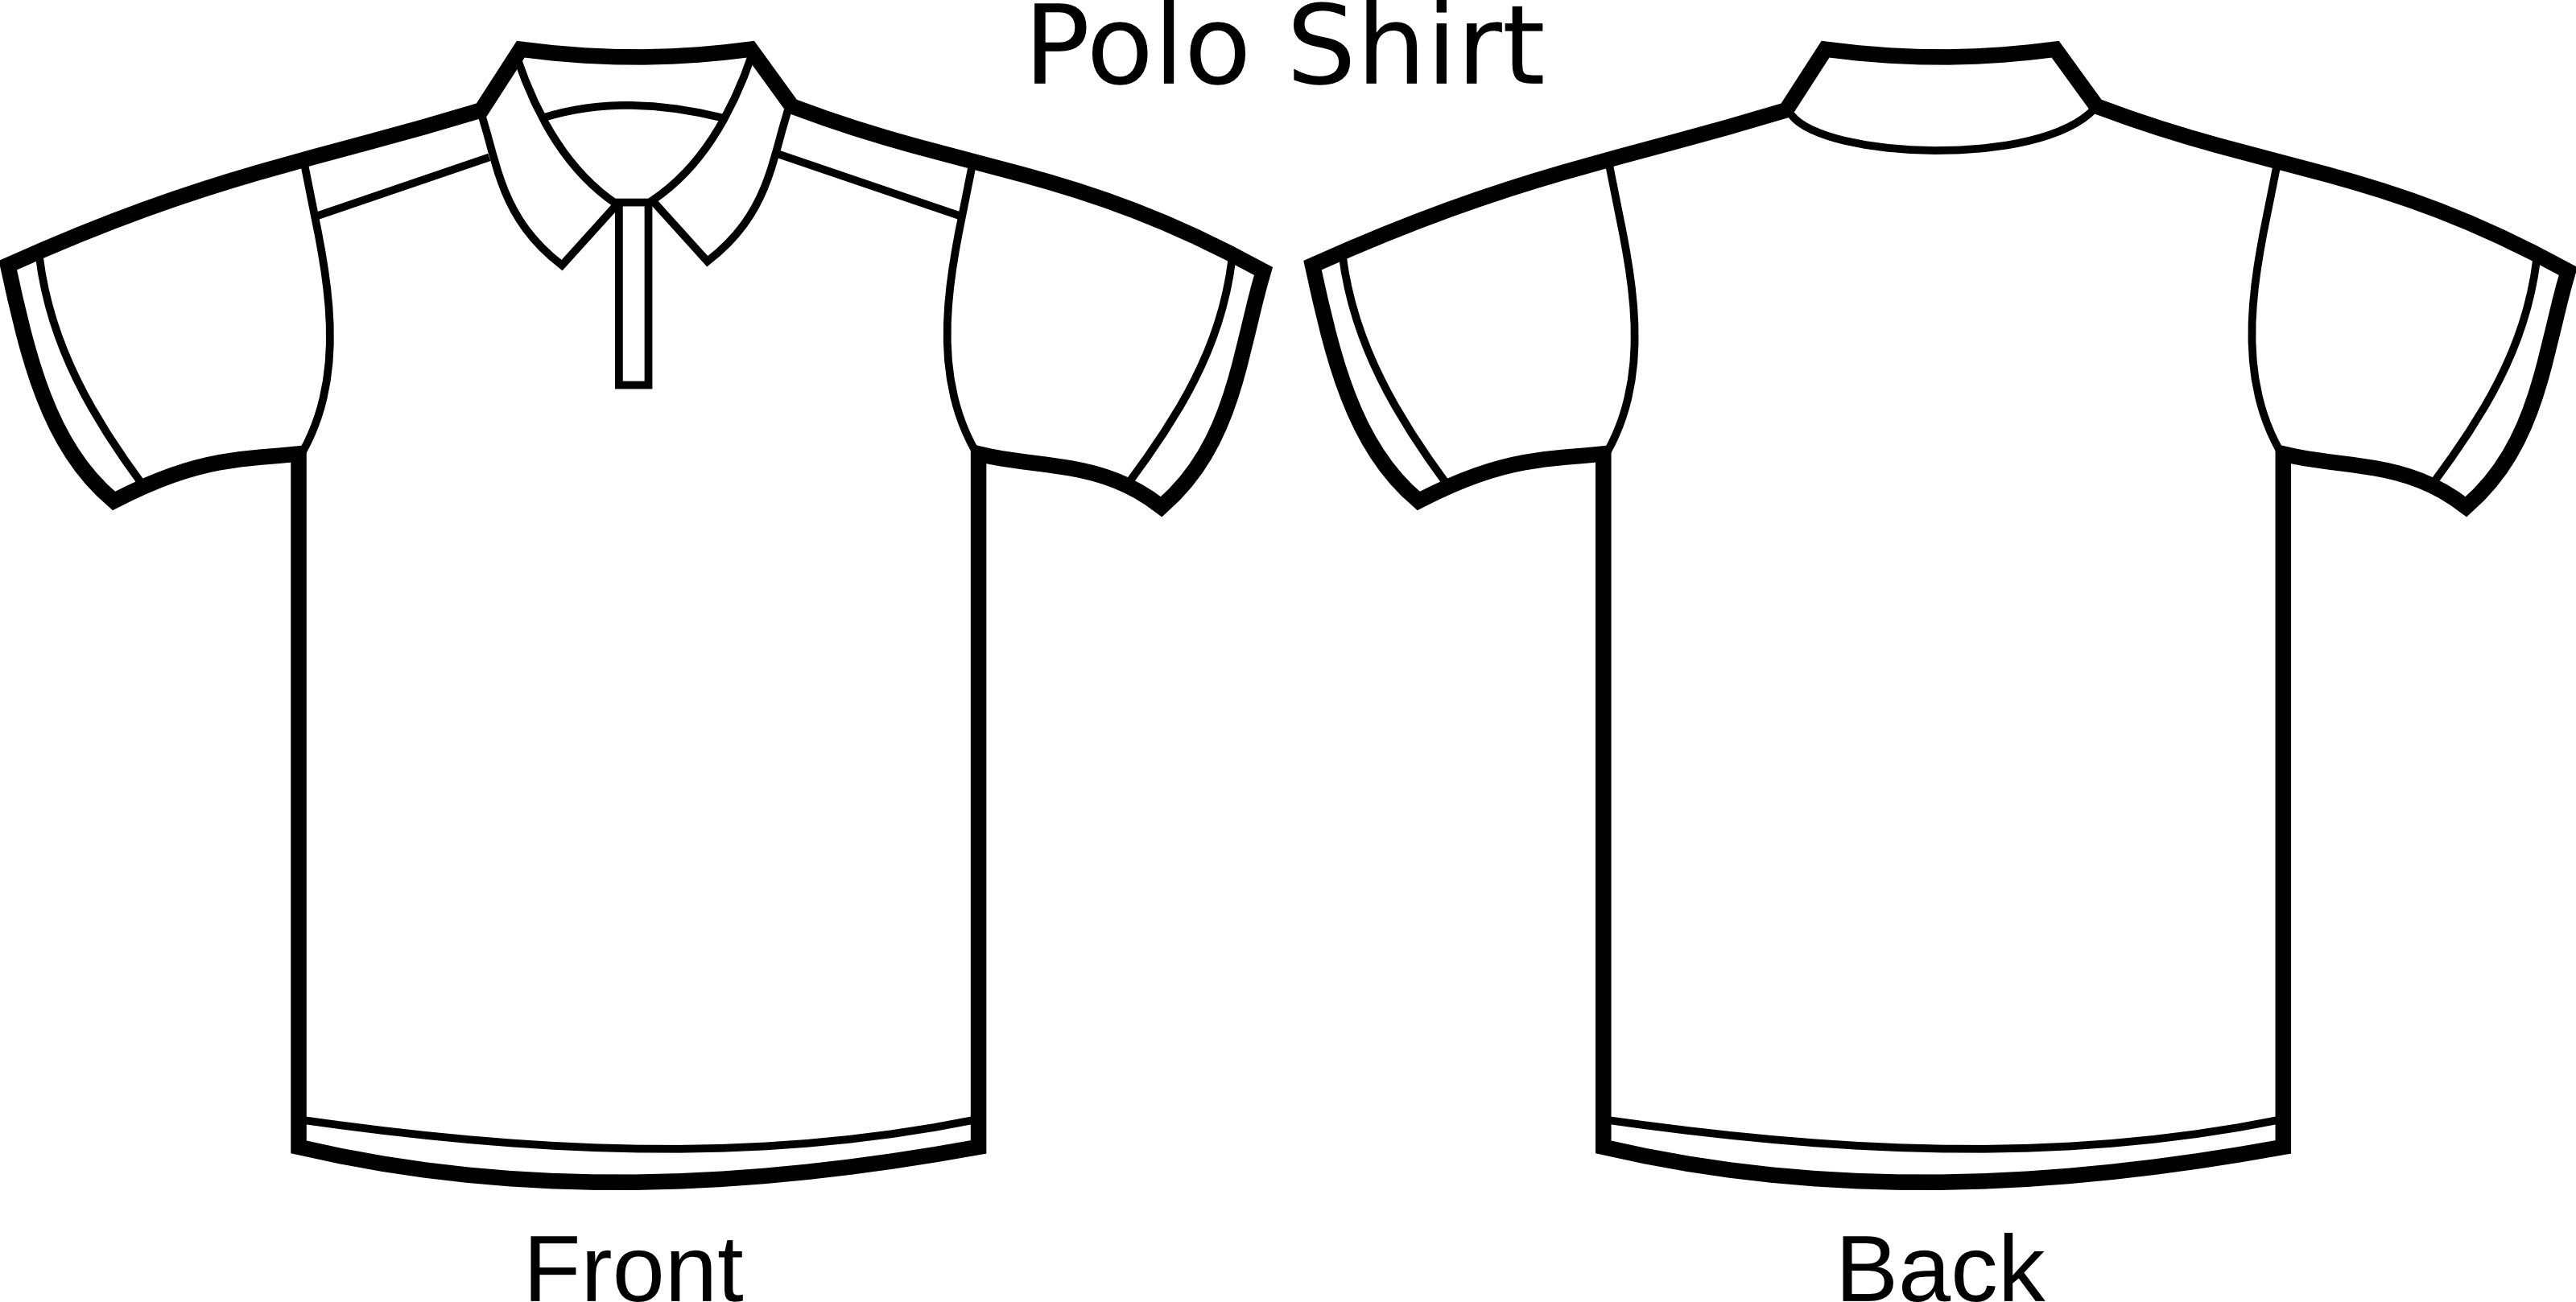 Free Polo Shirt Template Clipart Illustration   Free Images At Clker